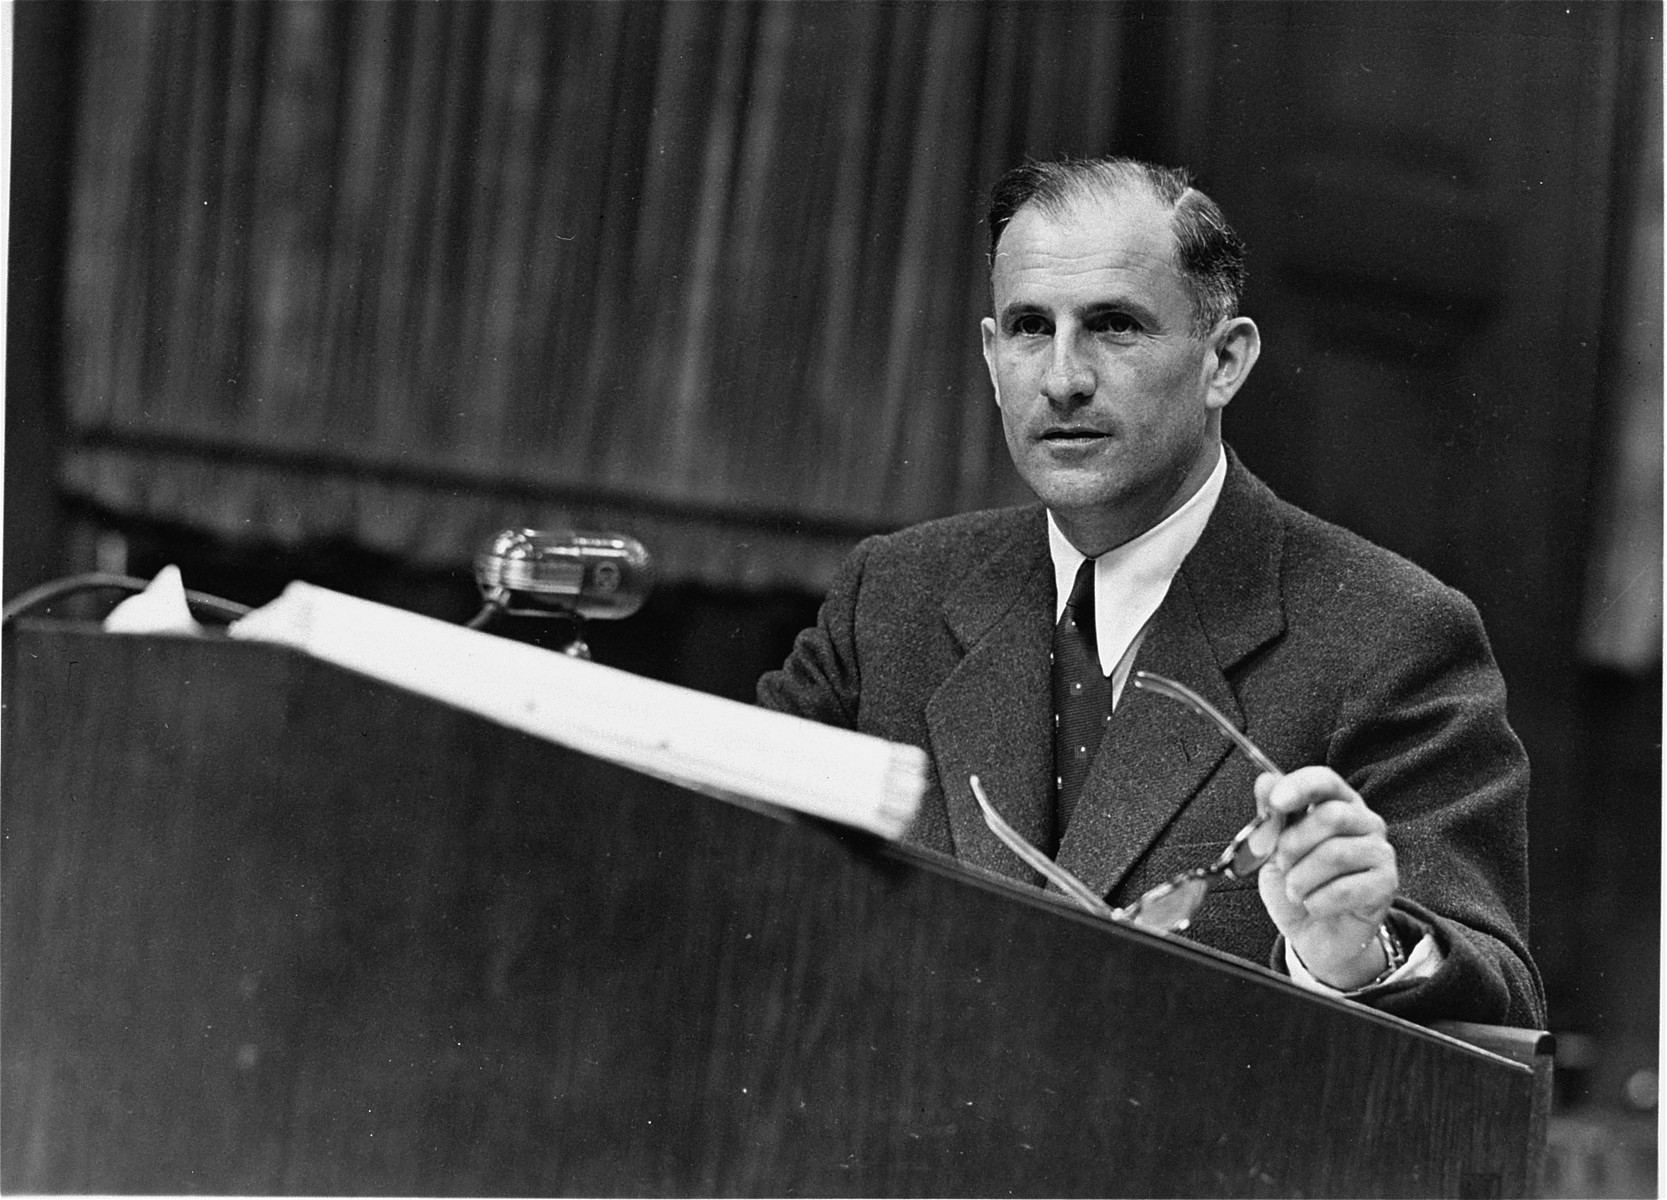 Dr. Robert M.W. Kempner, the Deputy Chief Counsel and Chief of Prosecution's Political Ministries Division, at the speaker's podium during the Ministries Trial.